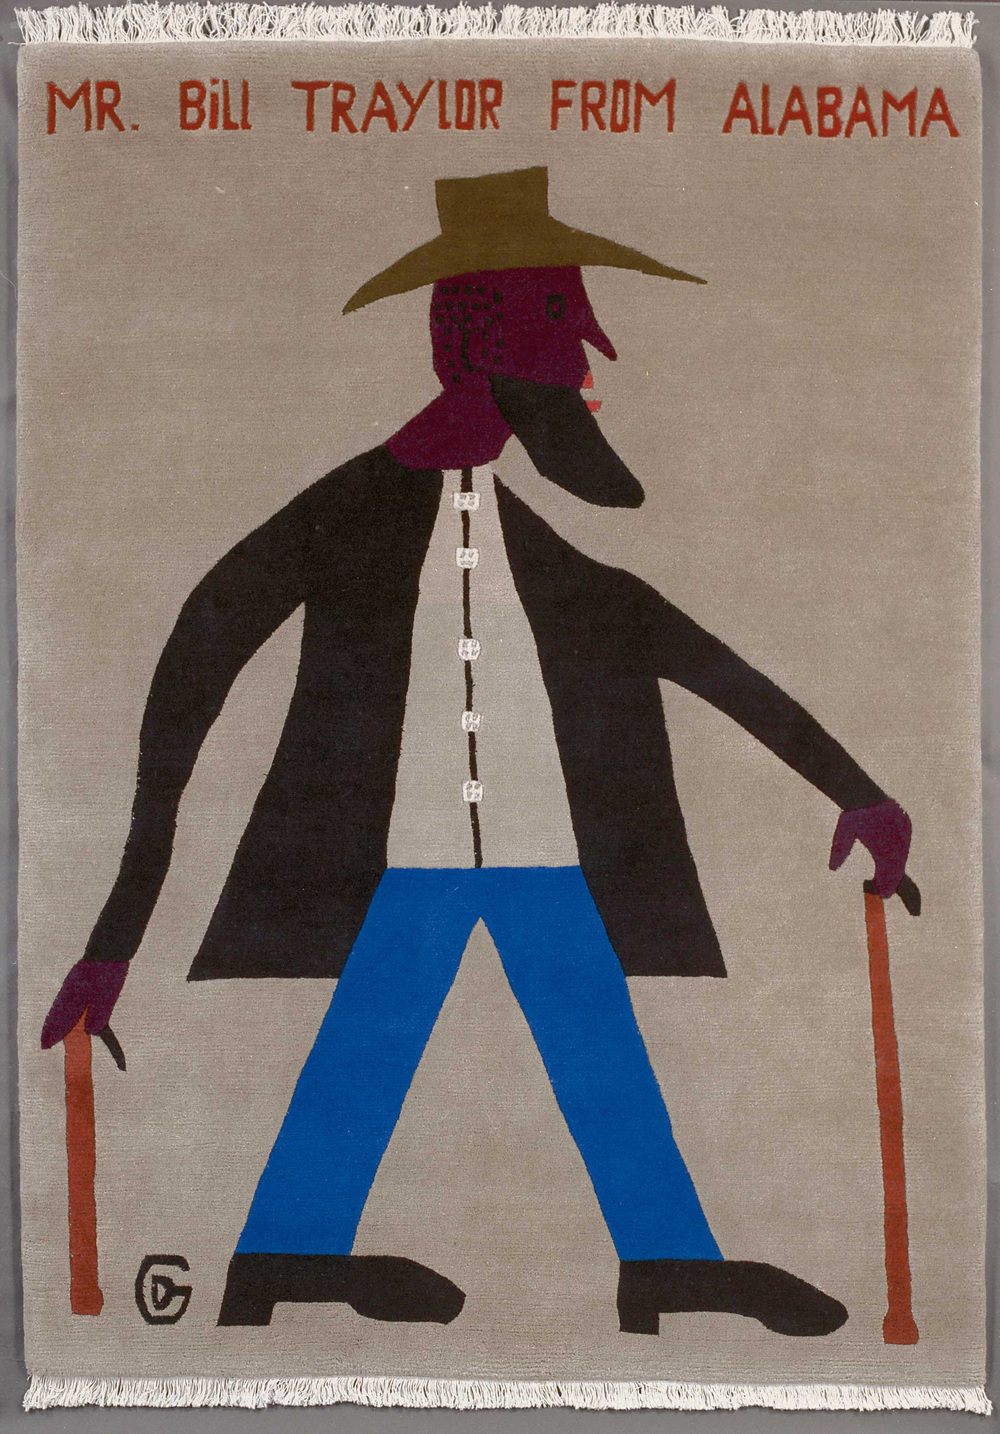 Mr. Bill Traylor